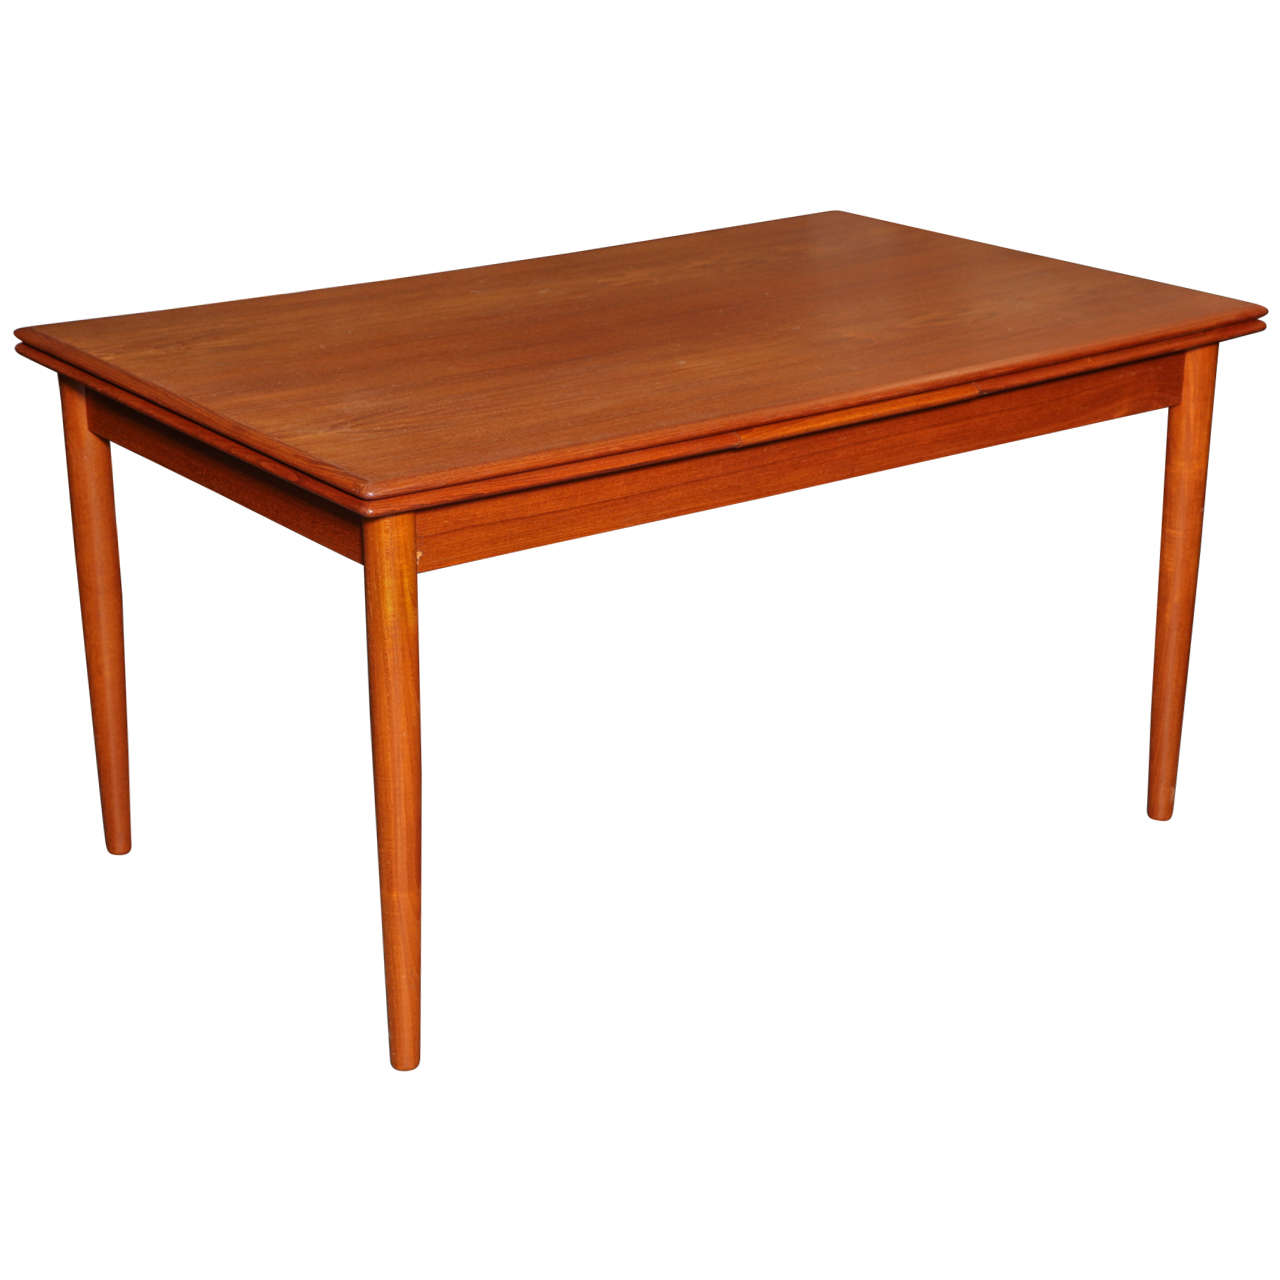 Danish modern dining table in teak expandable at 1stdibs for Danish modern dining room table